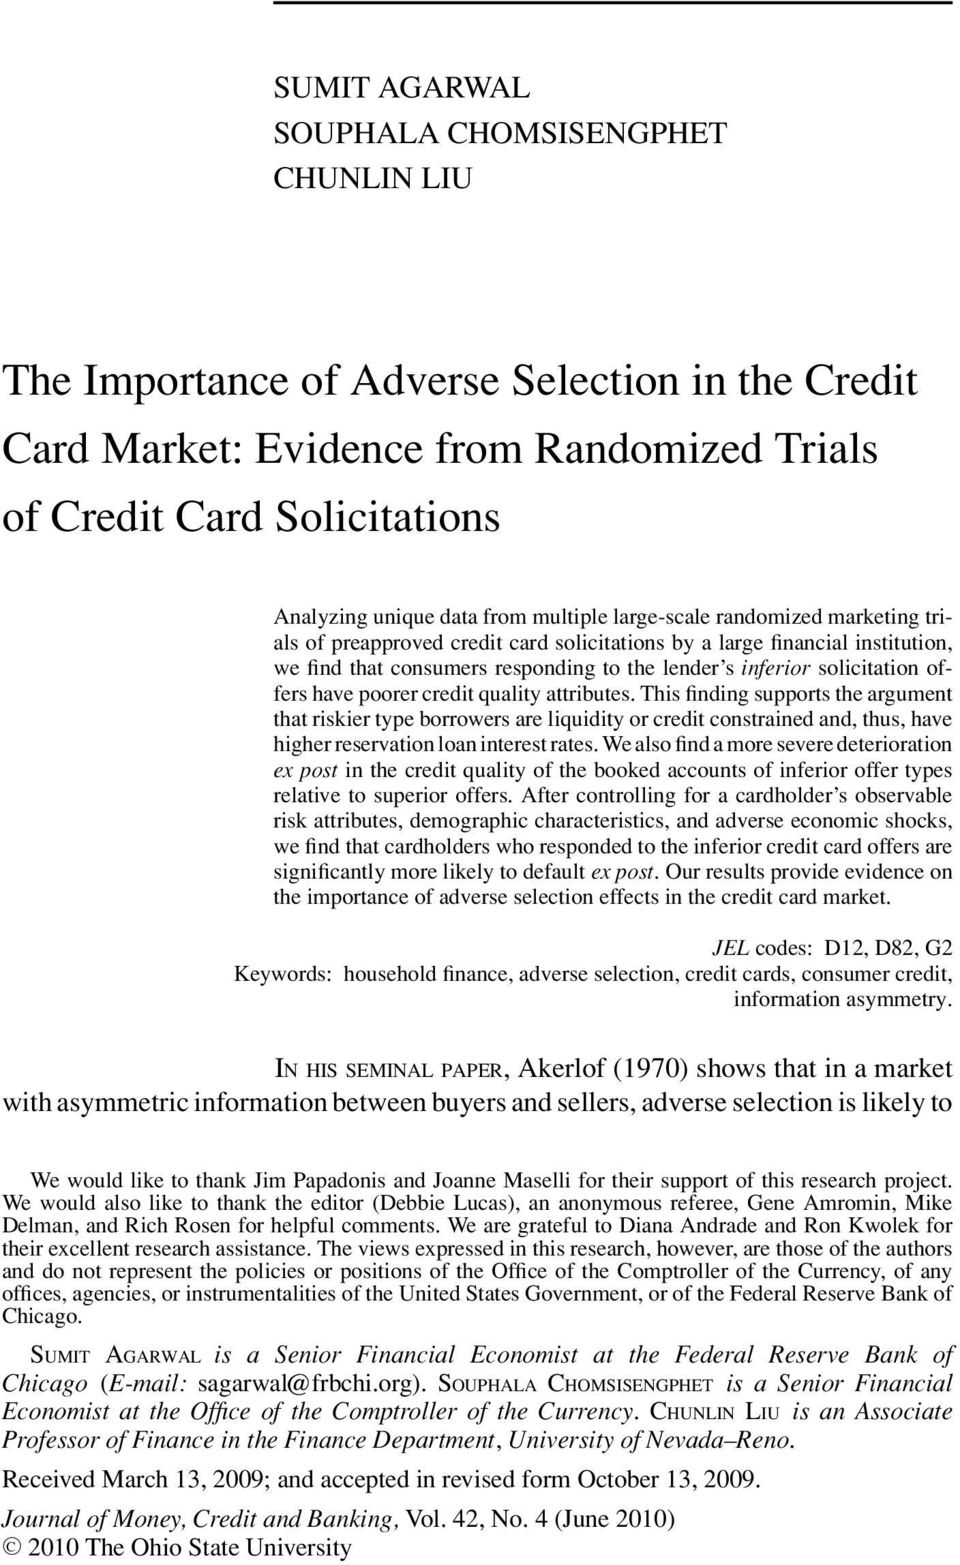 solicitation offers have poorer credit quality attributes.